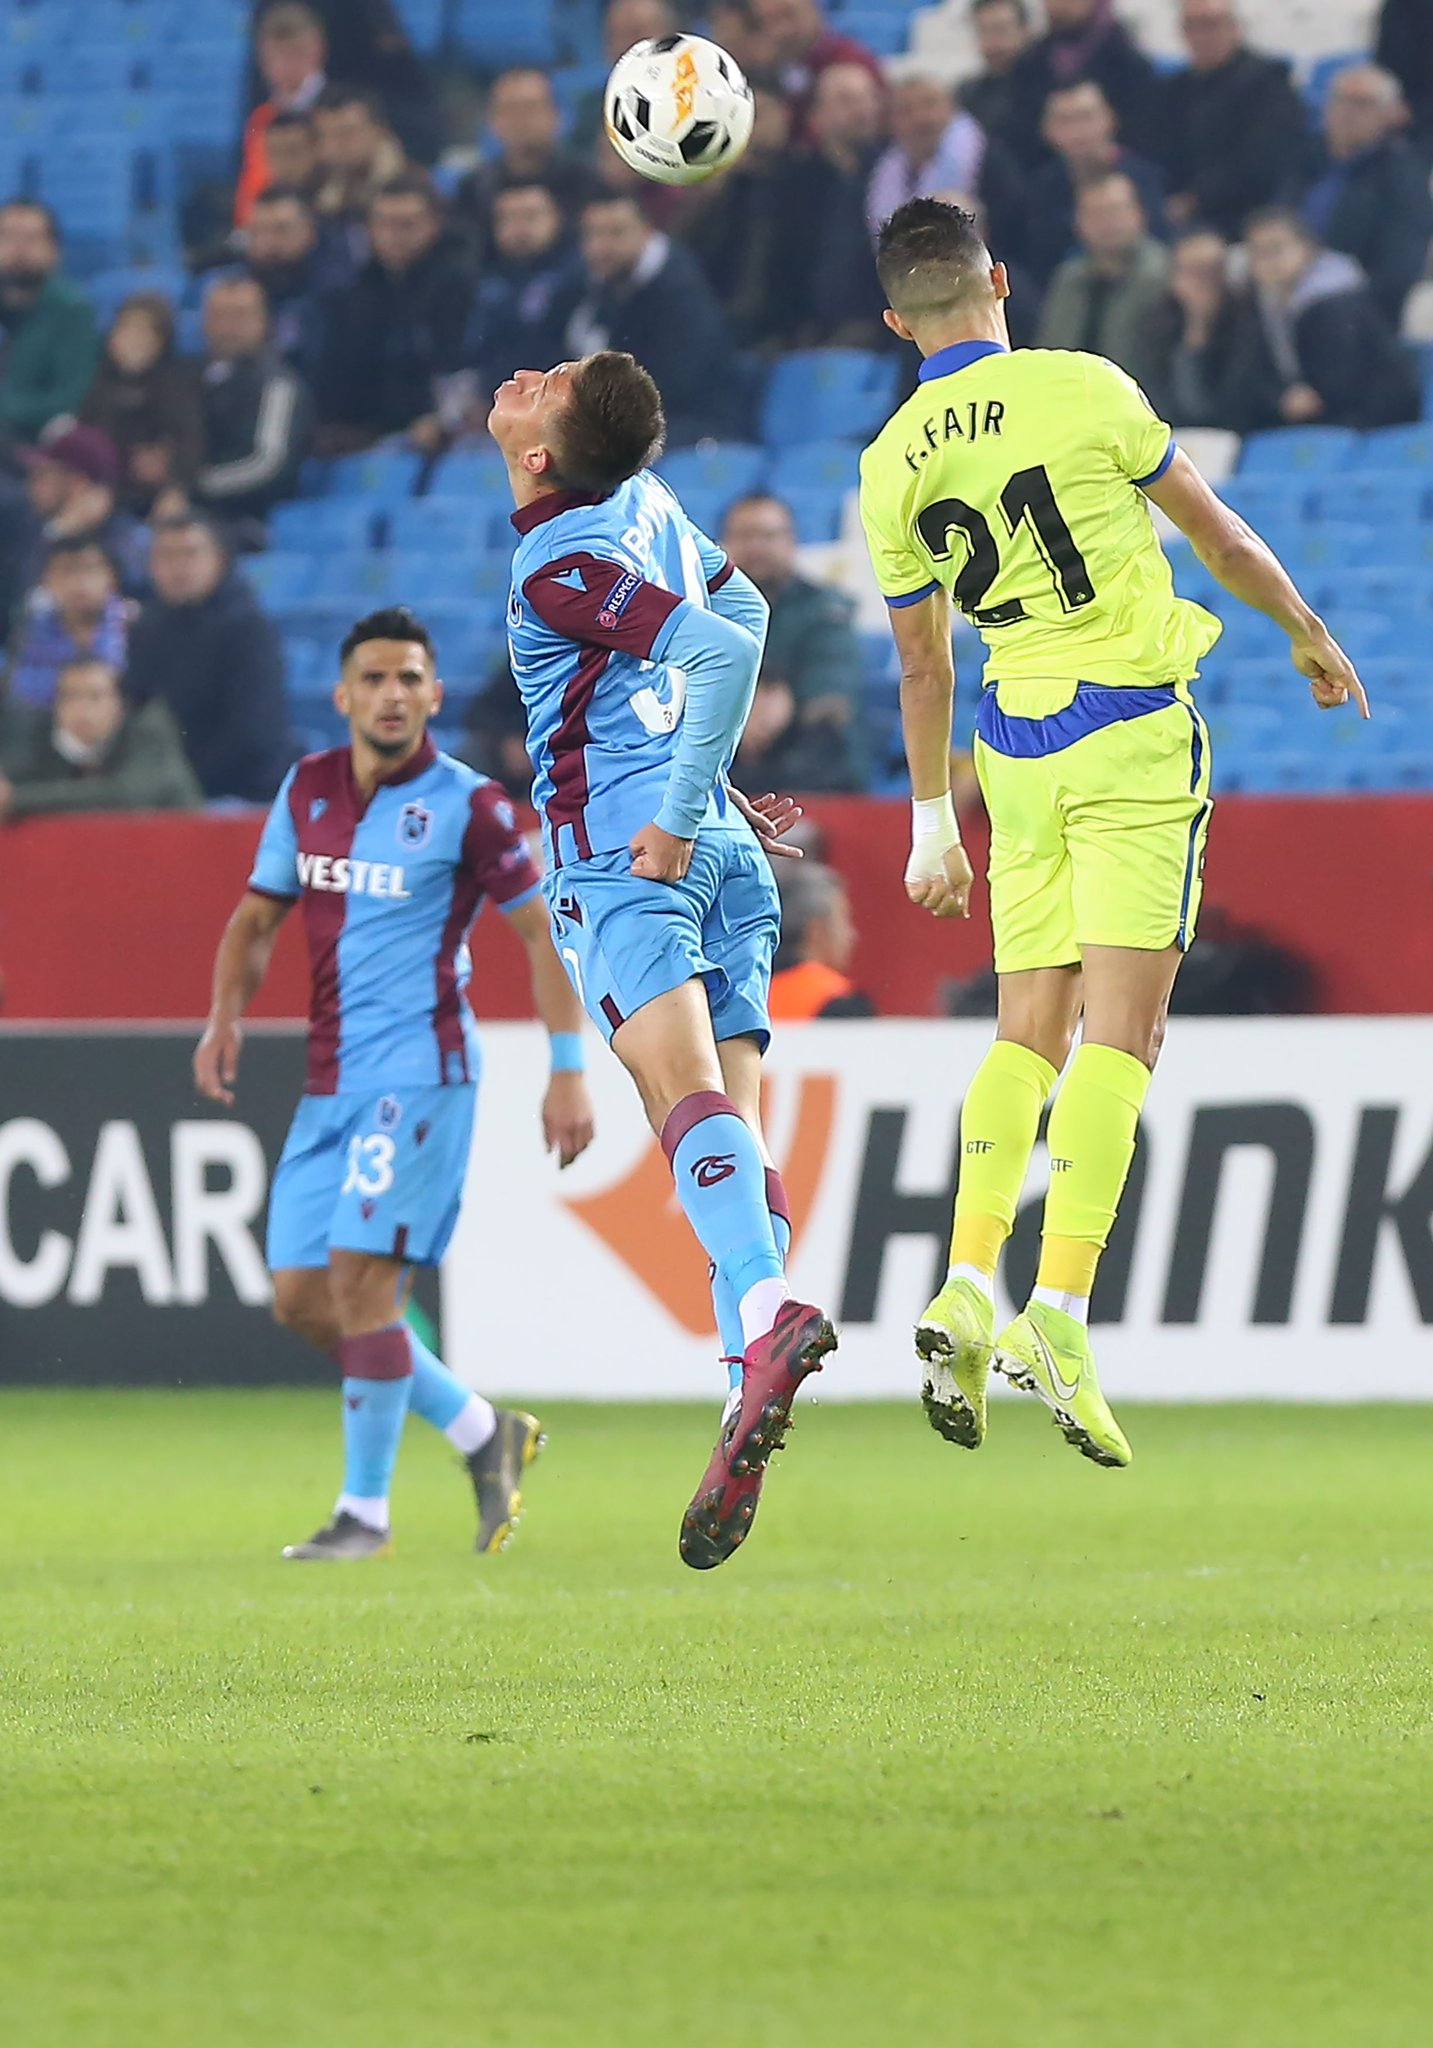 Europa League: Mikel, Nwakaeme Benched In Trabzonspor's Home Defeat To Getafe